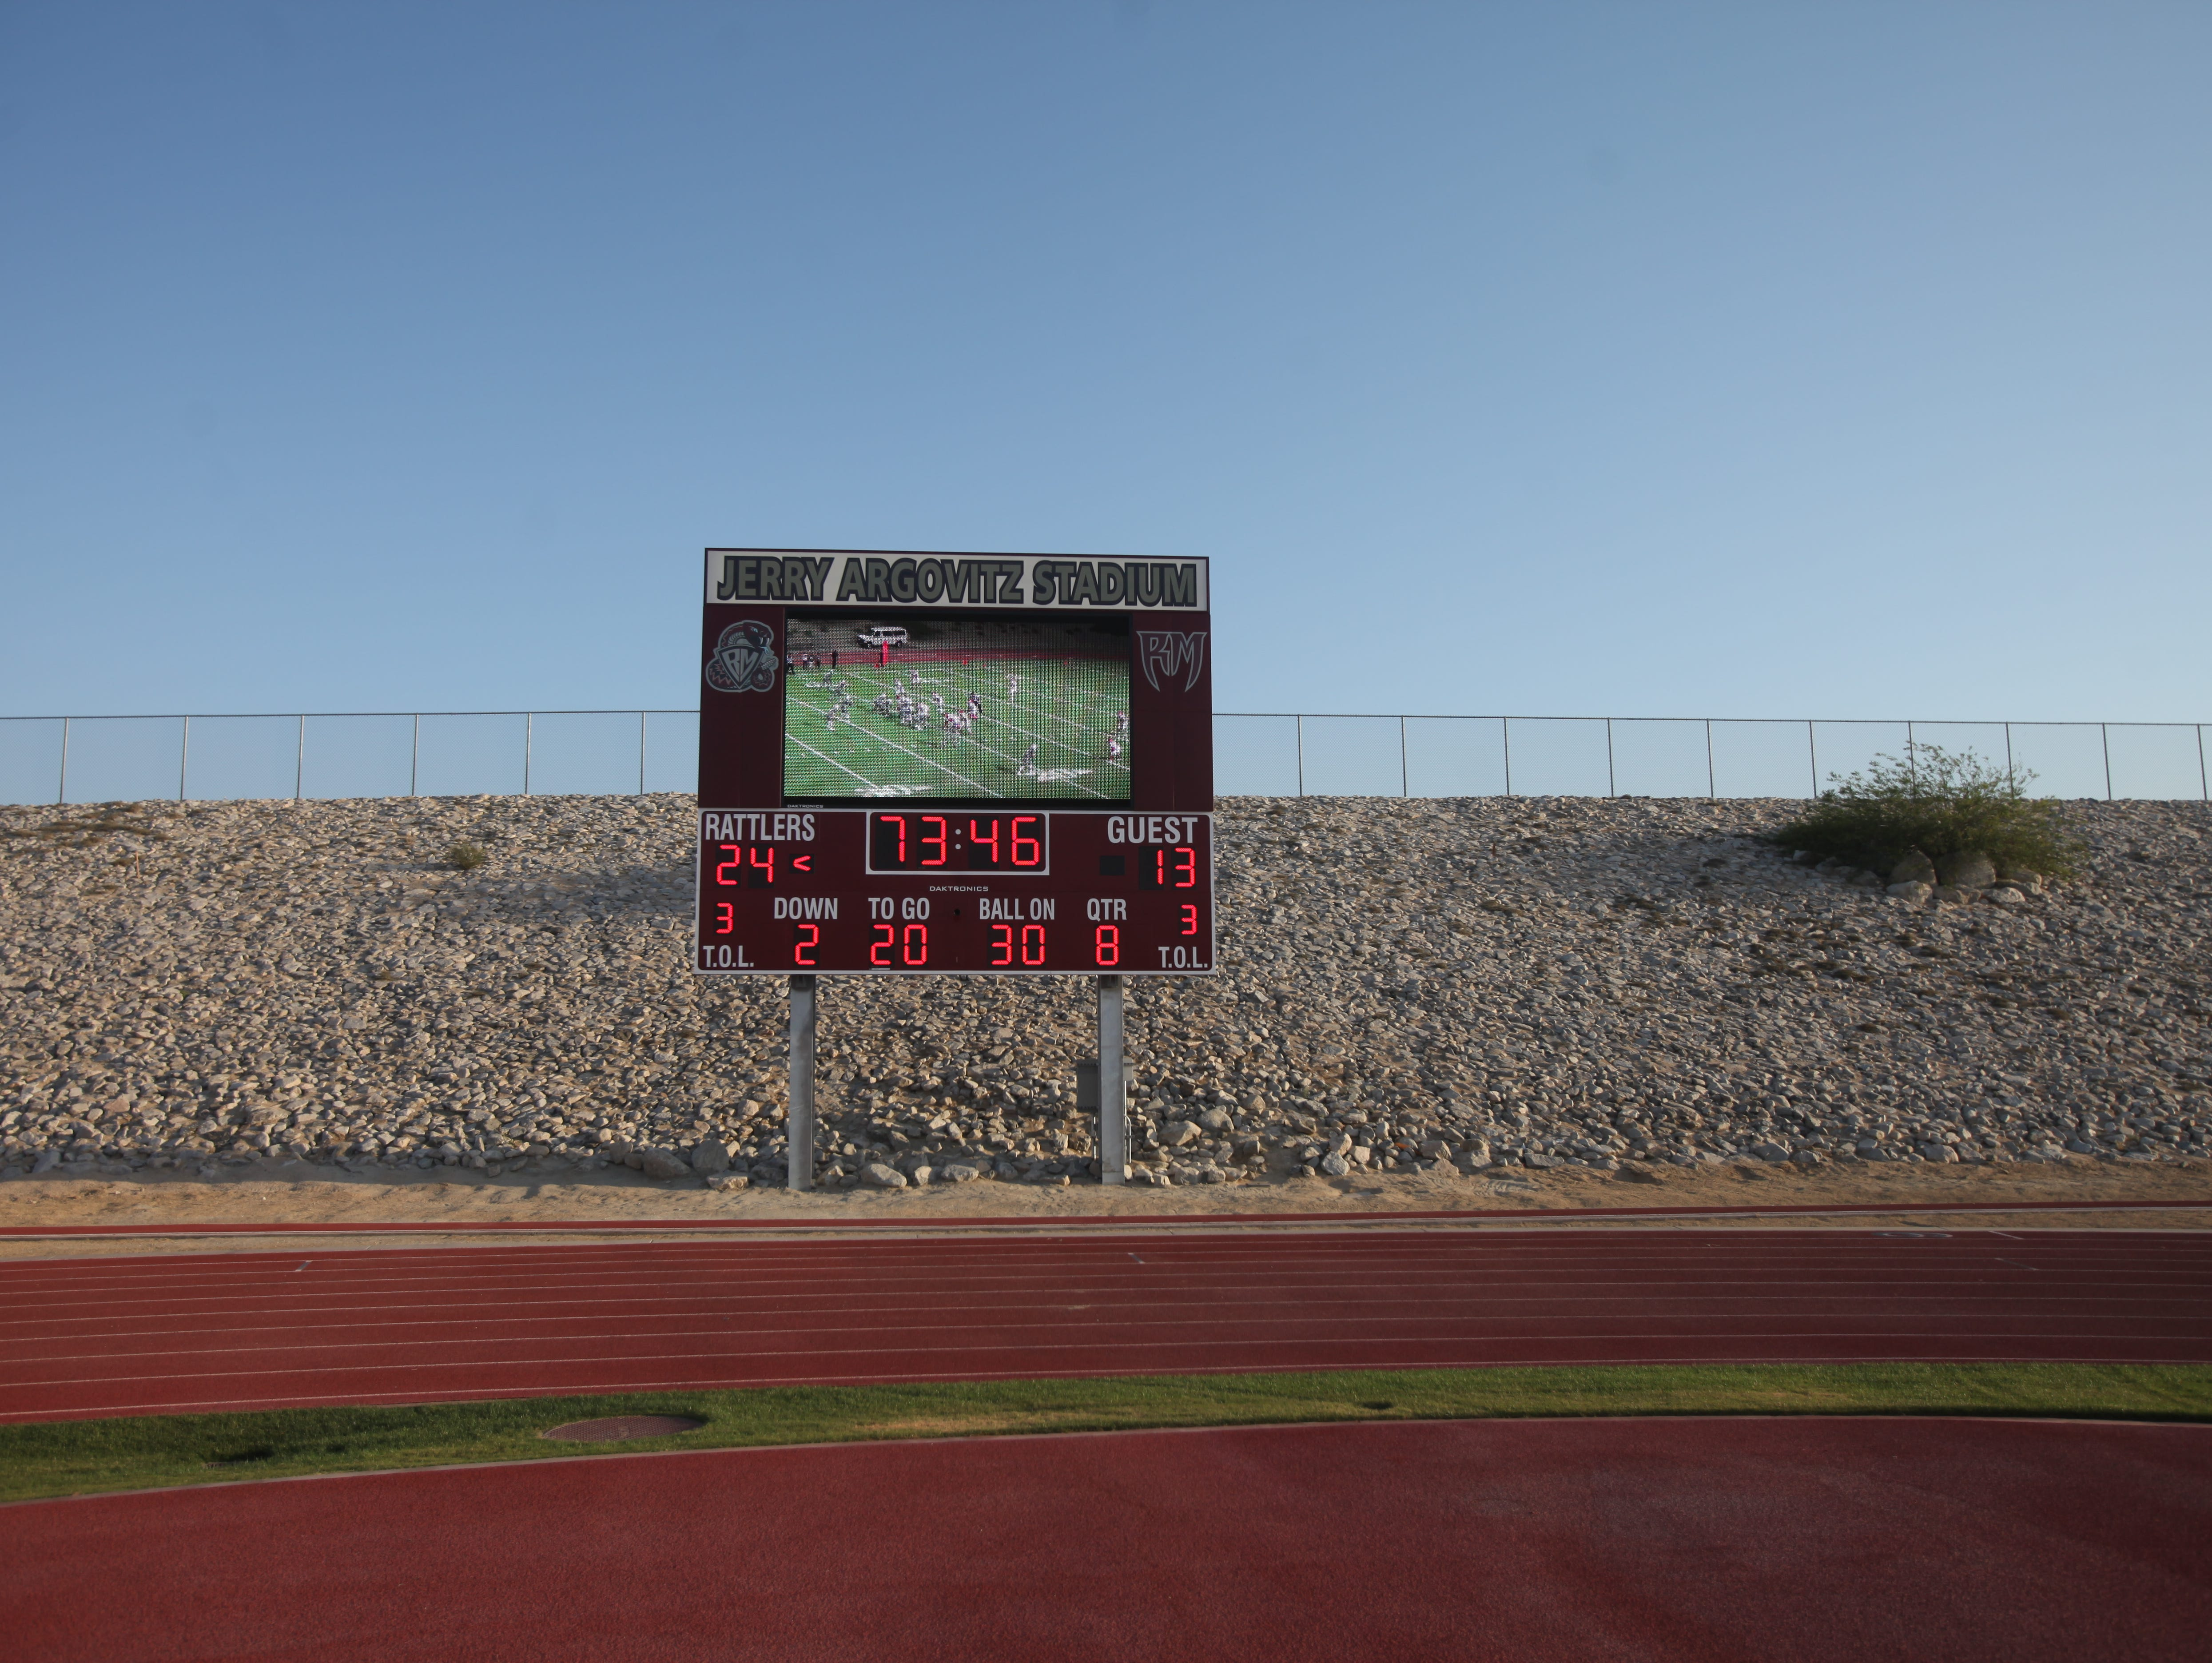 The new jumbotron at Jerry Argovitz Stadium at Ranch Mirage High School will be the first of its kind in the Coachella Valley high schools.